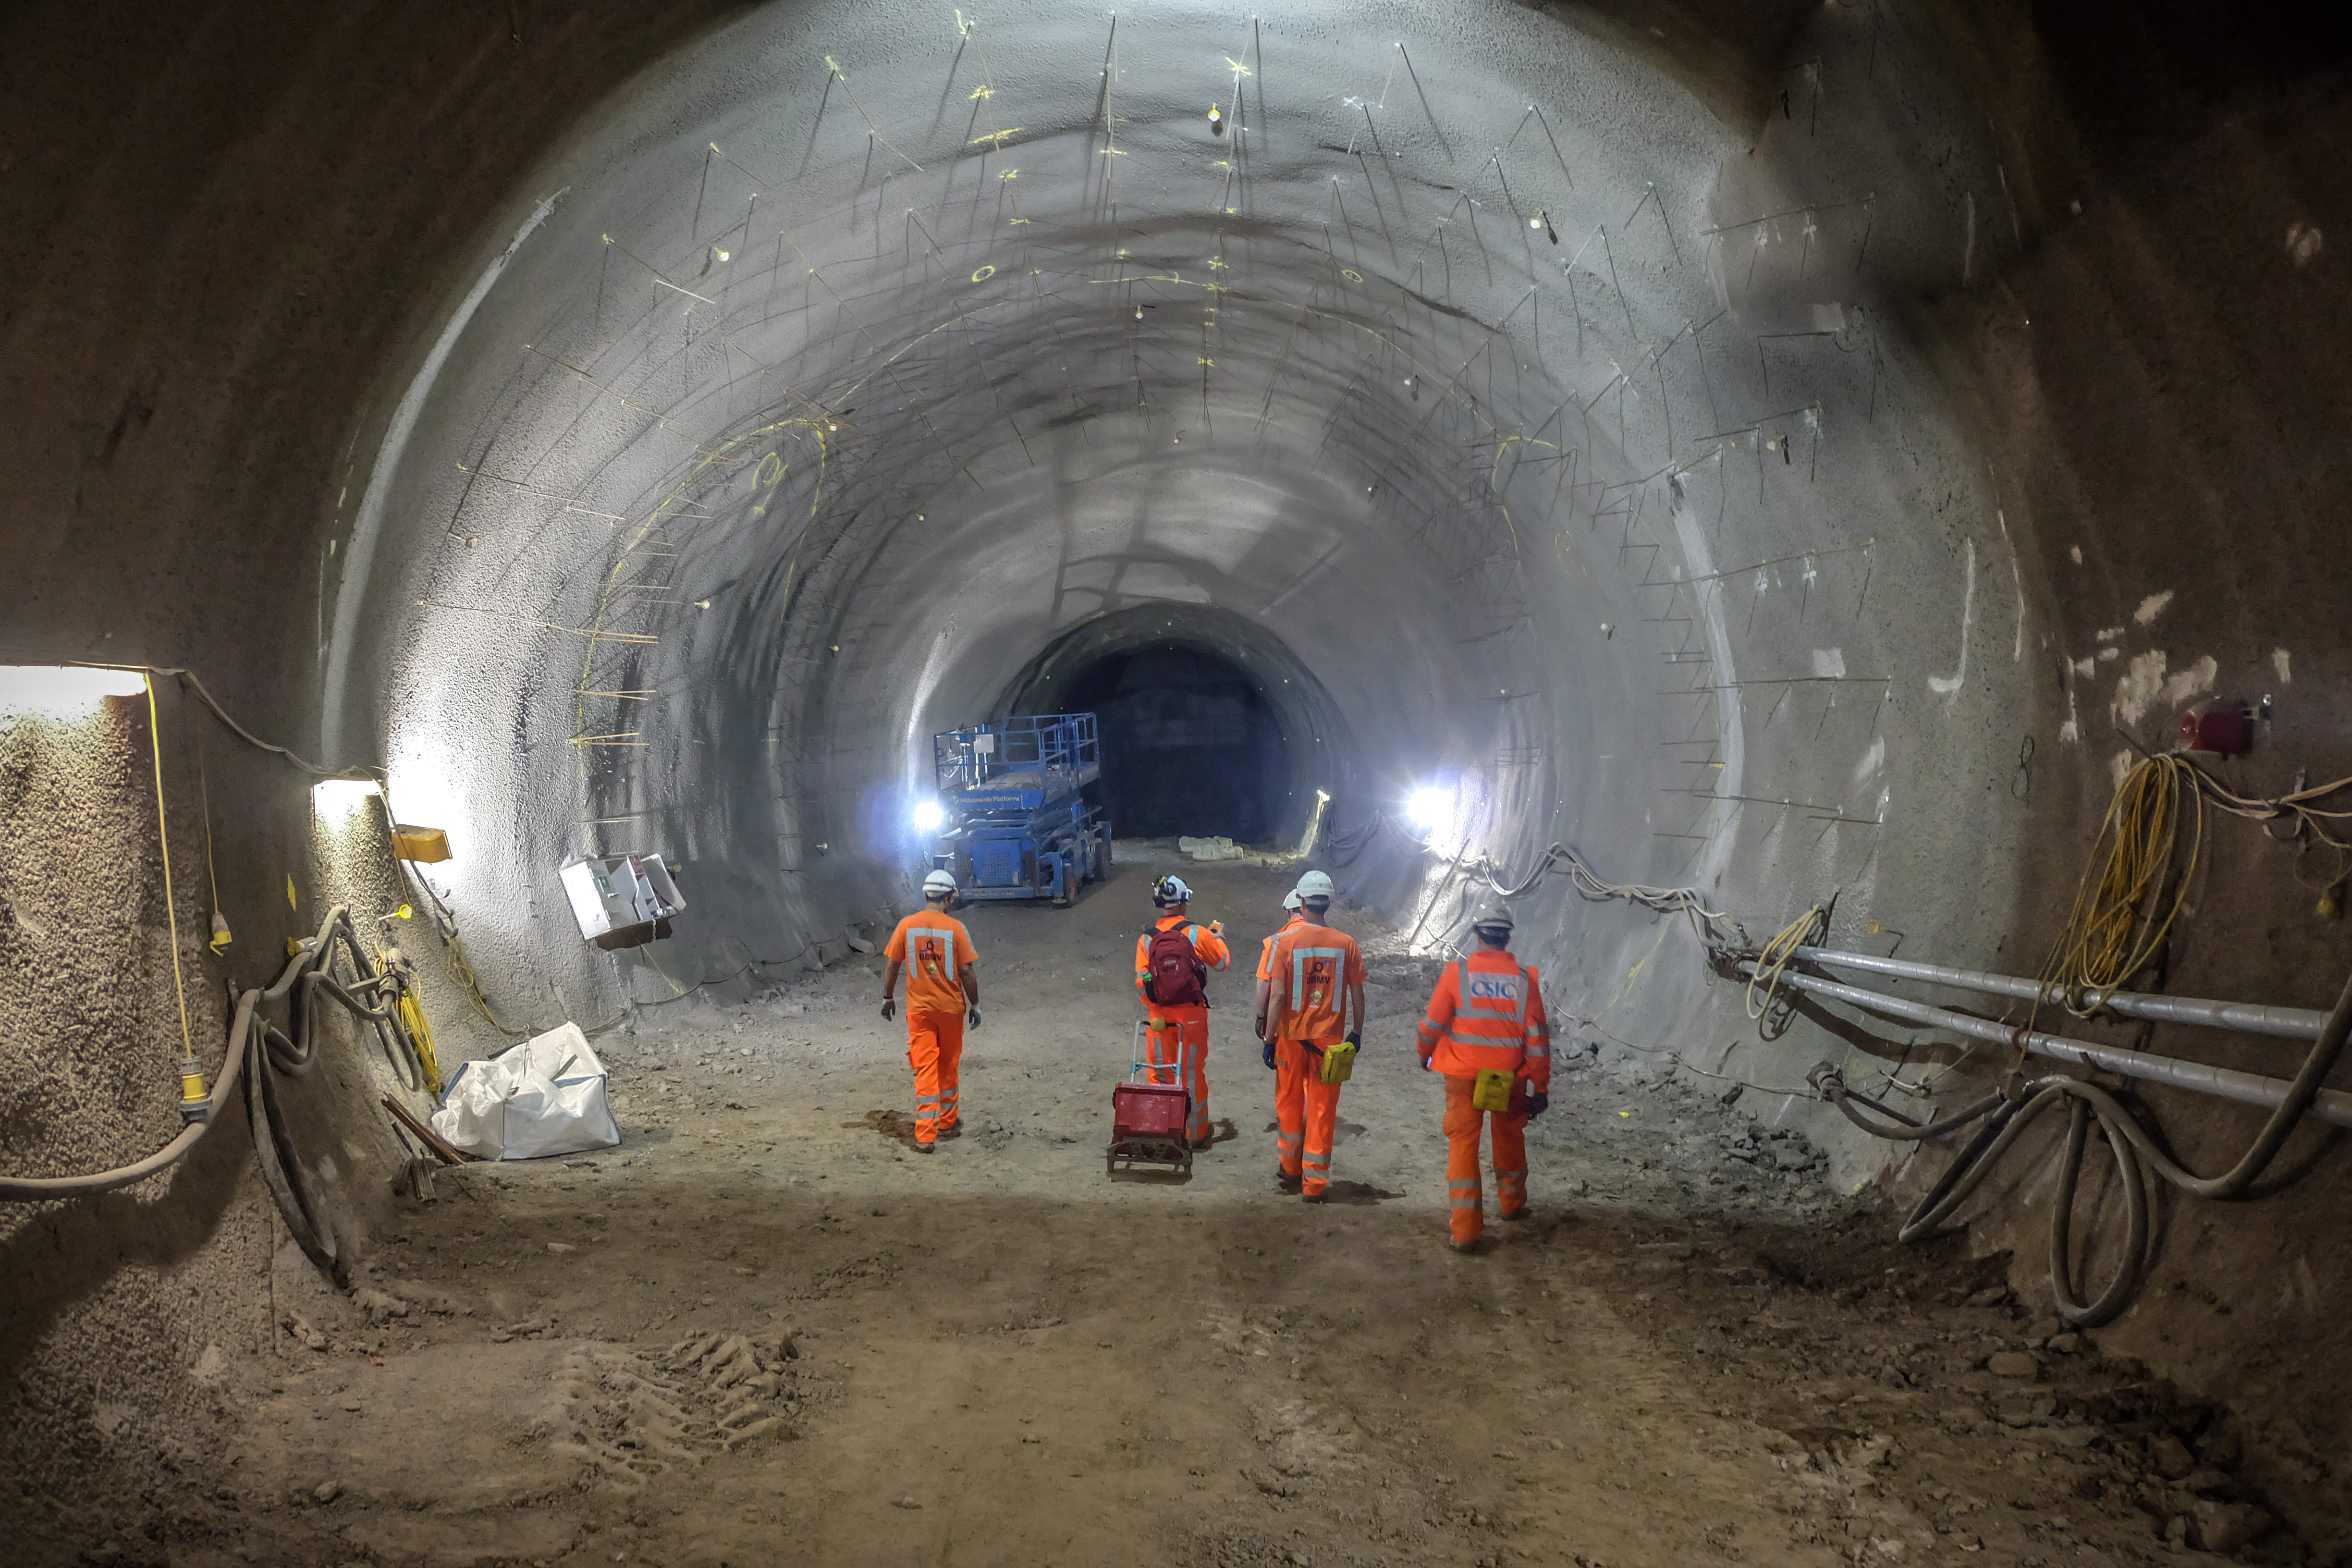 Crossrail, delayed construction projects in the UK